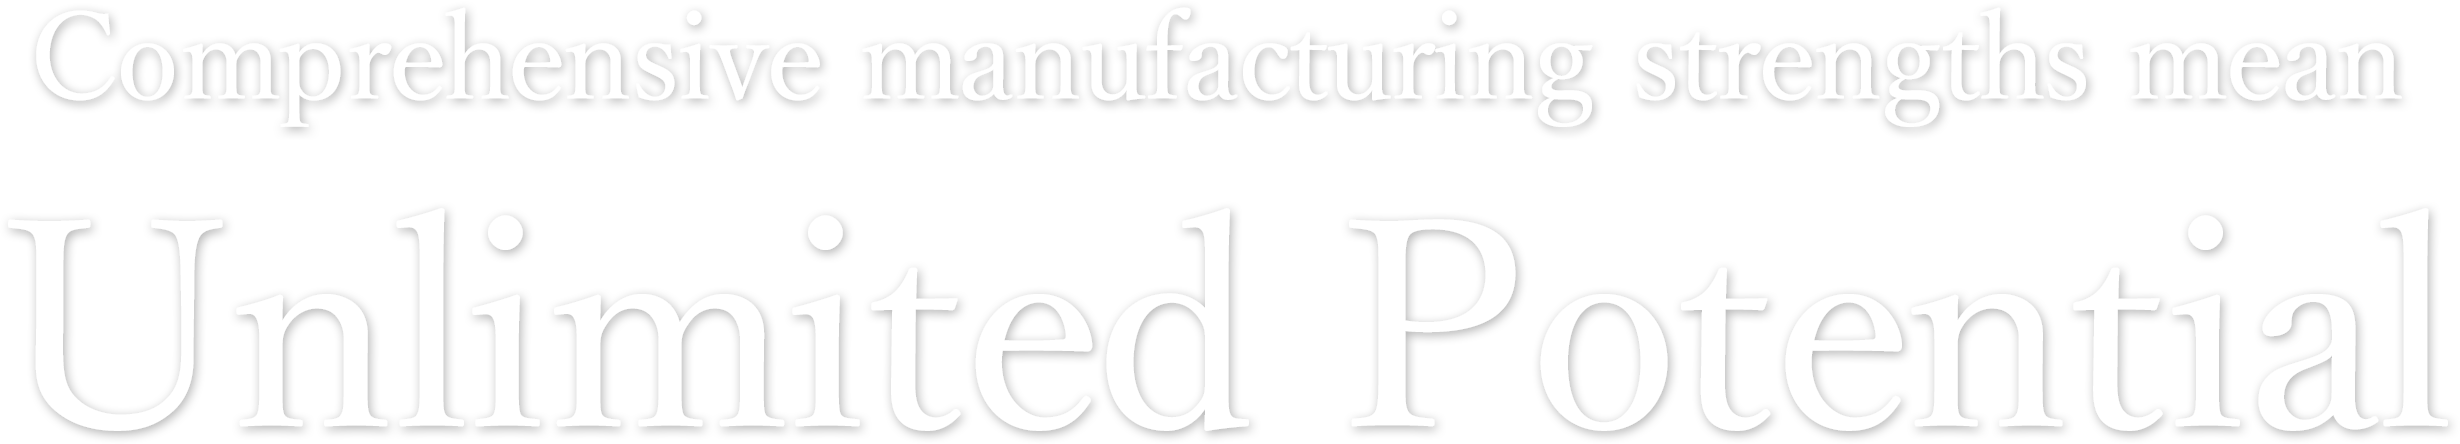 Comprehensive manufacturing strengths mean unlimited potential